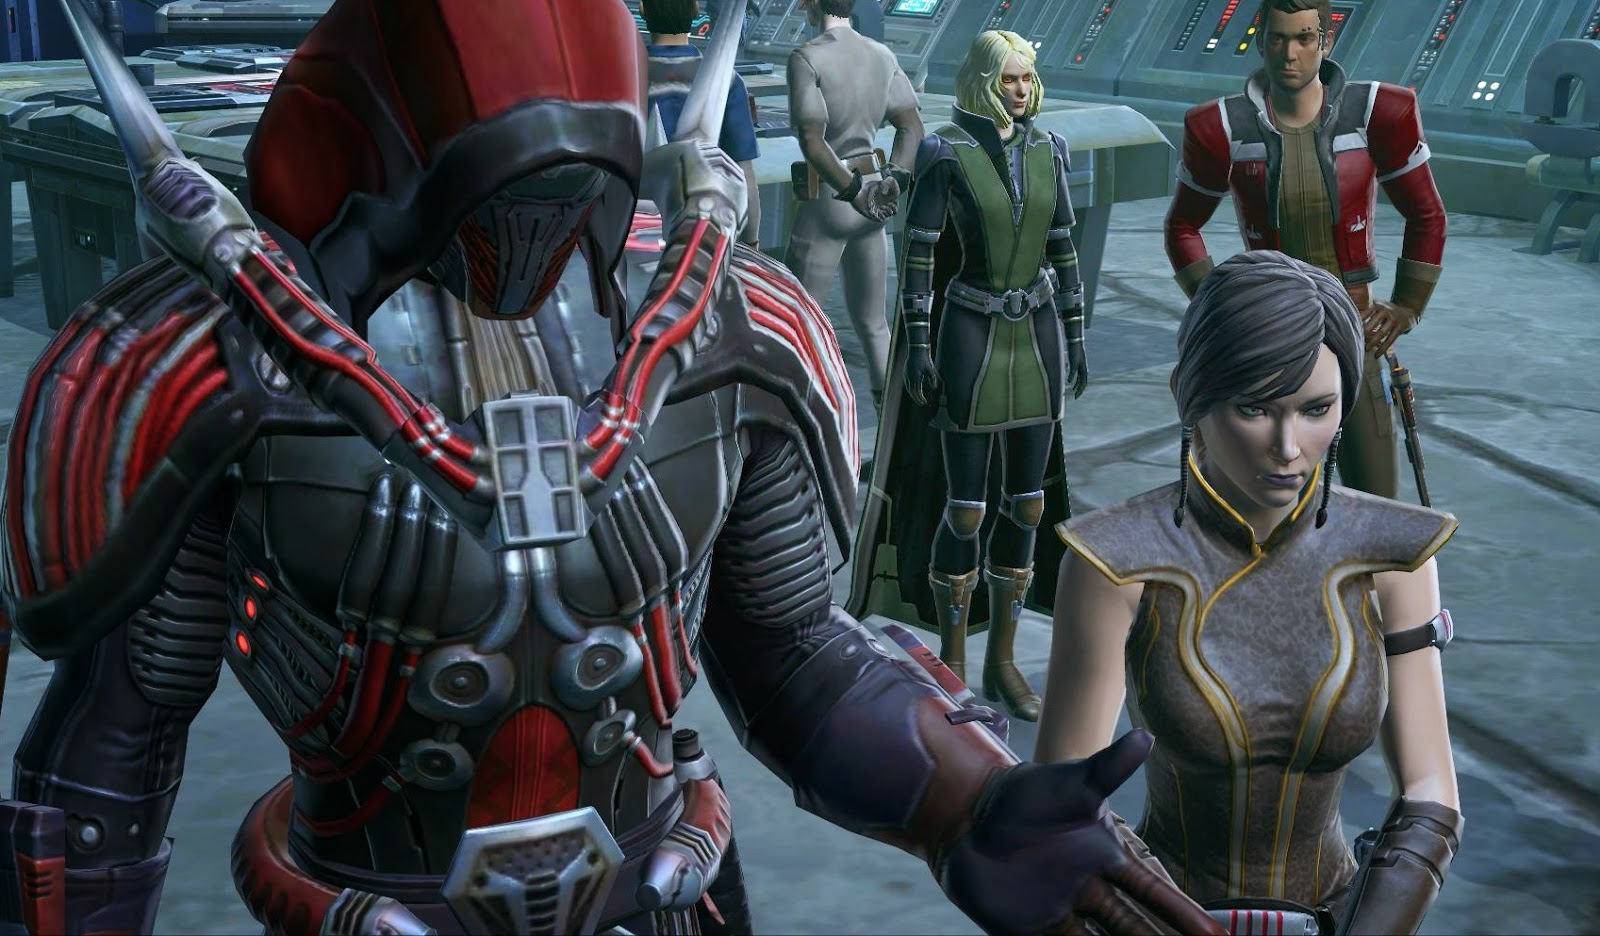 Going commando a swtor fan blog reviewing shadow of revans story seeing darth marr and satele shan co operate for once is both interesting and novel but lets not make a habit out of it fandeluxe Gallery